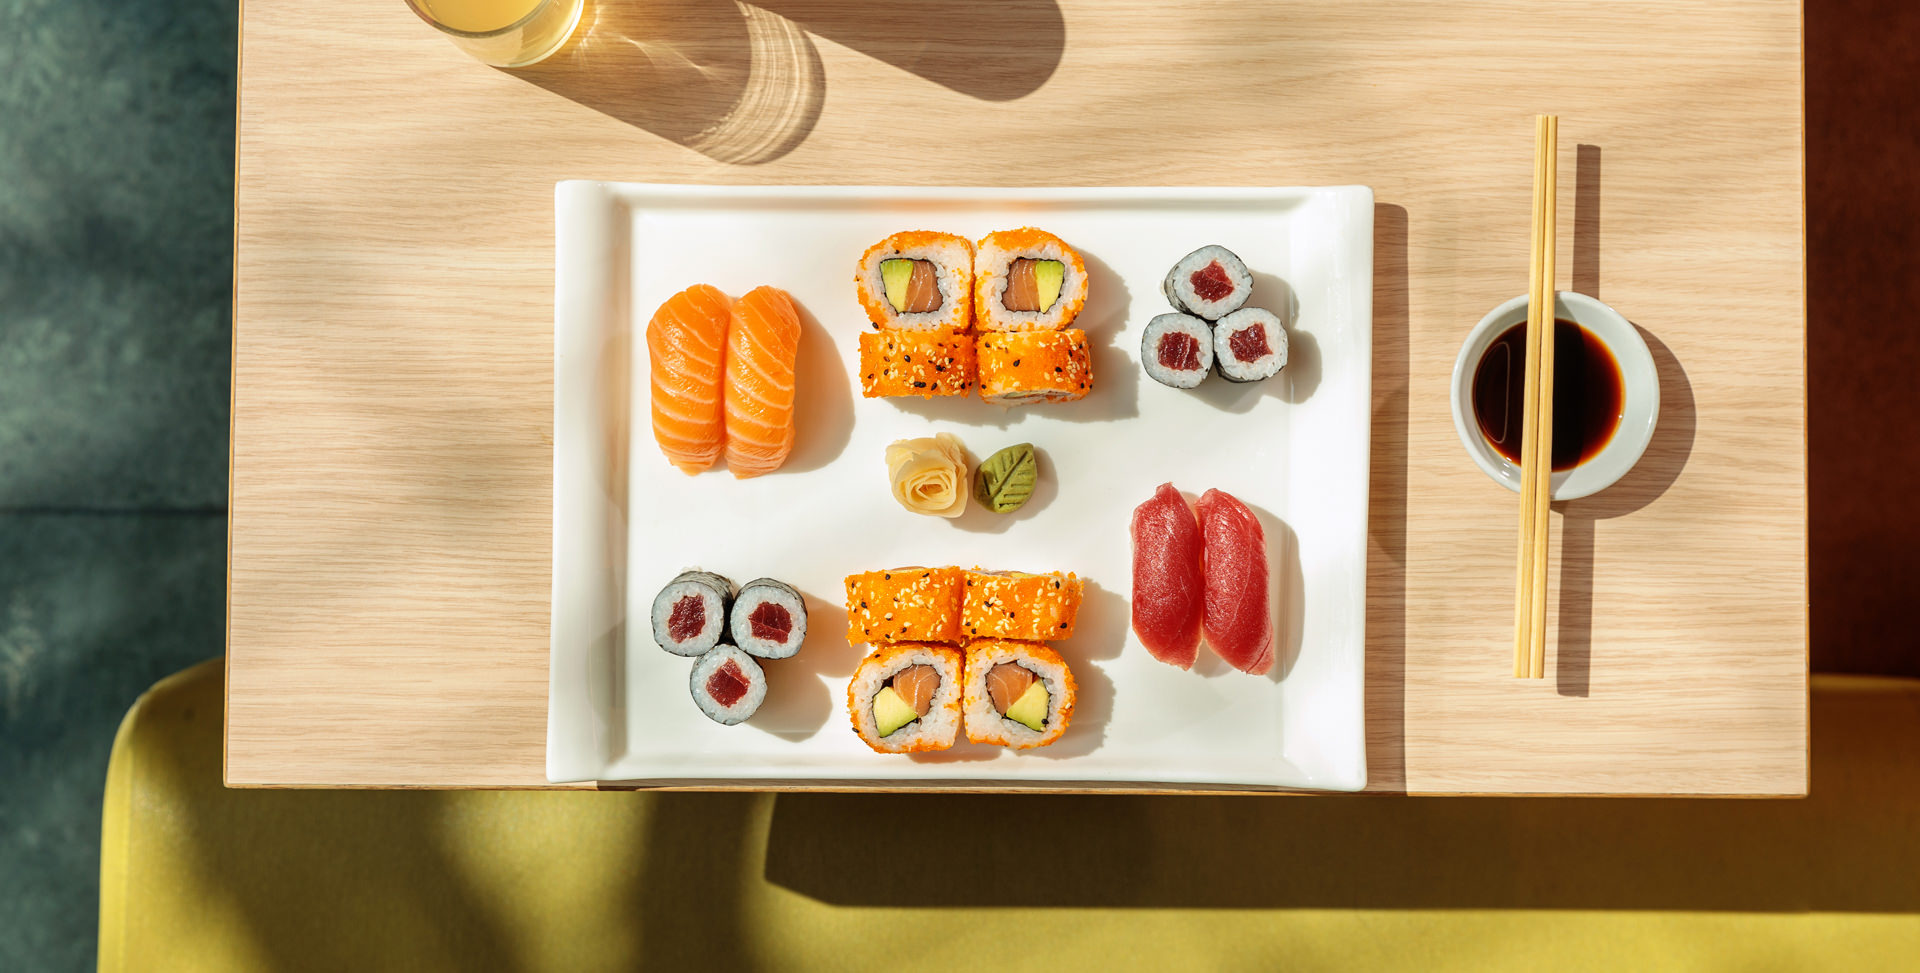 Sushi Teller auf Foodfoto in Shopping-Center